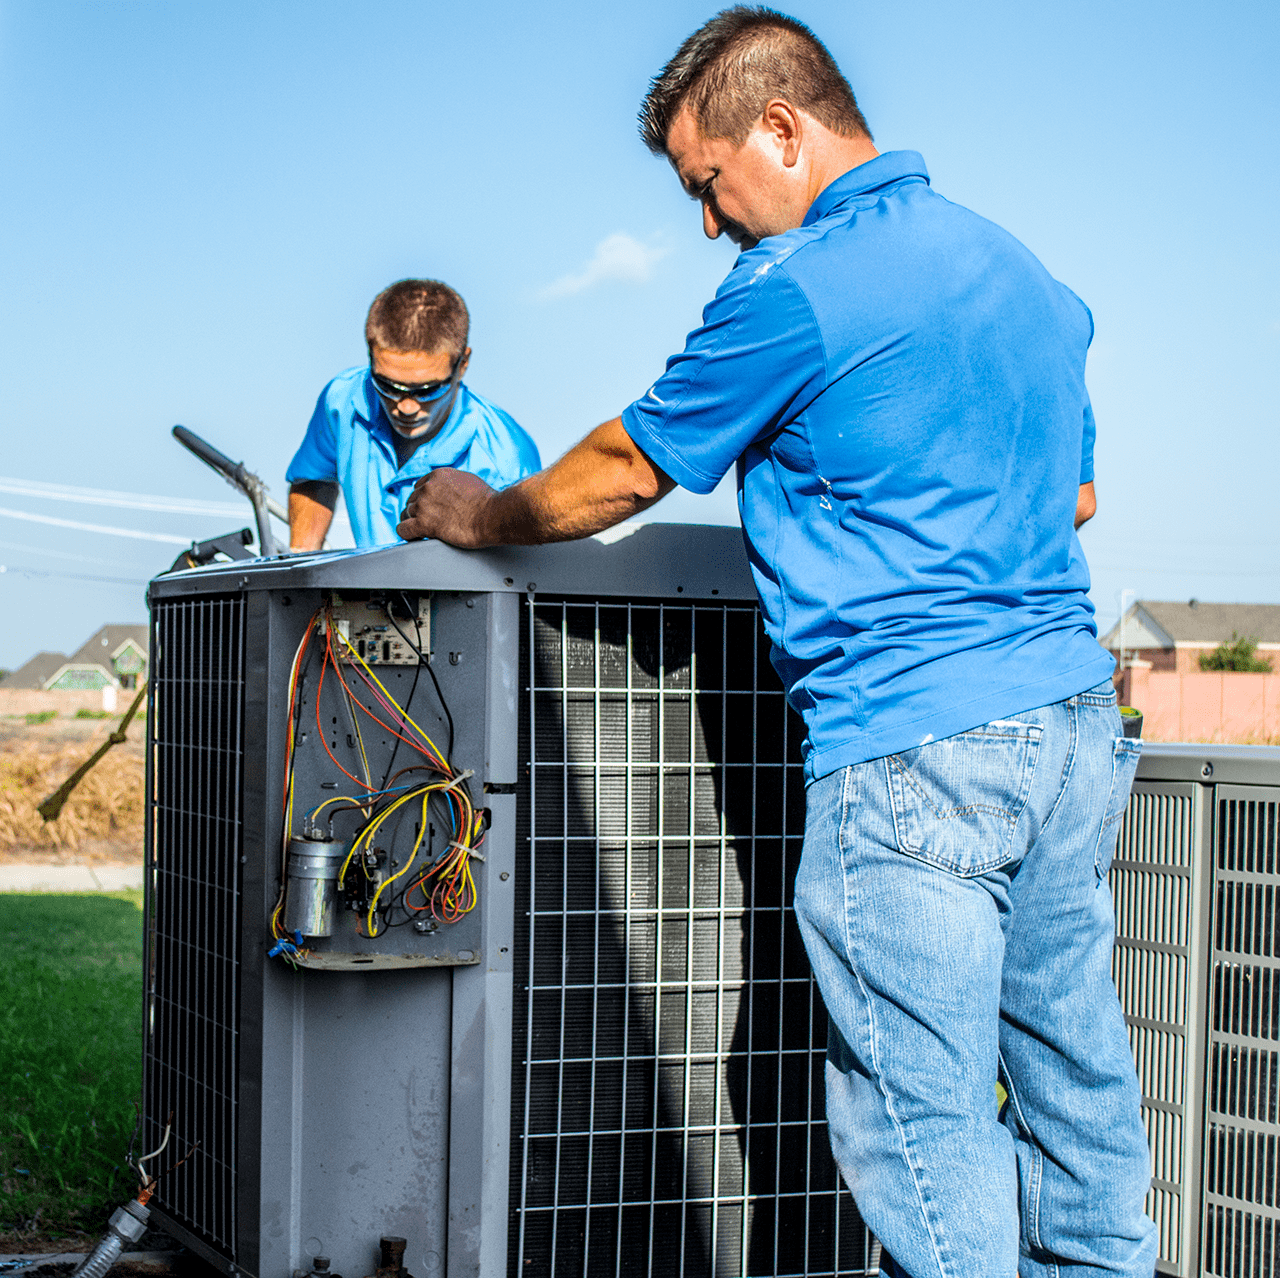 Lawson TX AC Unit Replacement in Forney Texas, Provide service to Rockwall Heath Sunnyvale Rowlett Crandall Garland